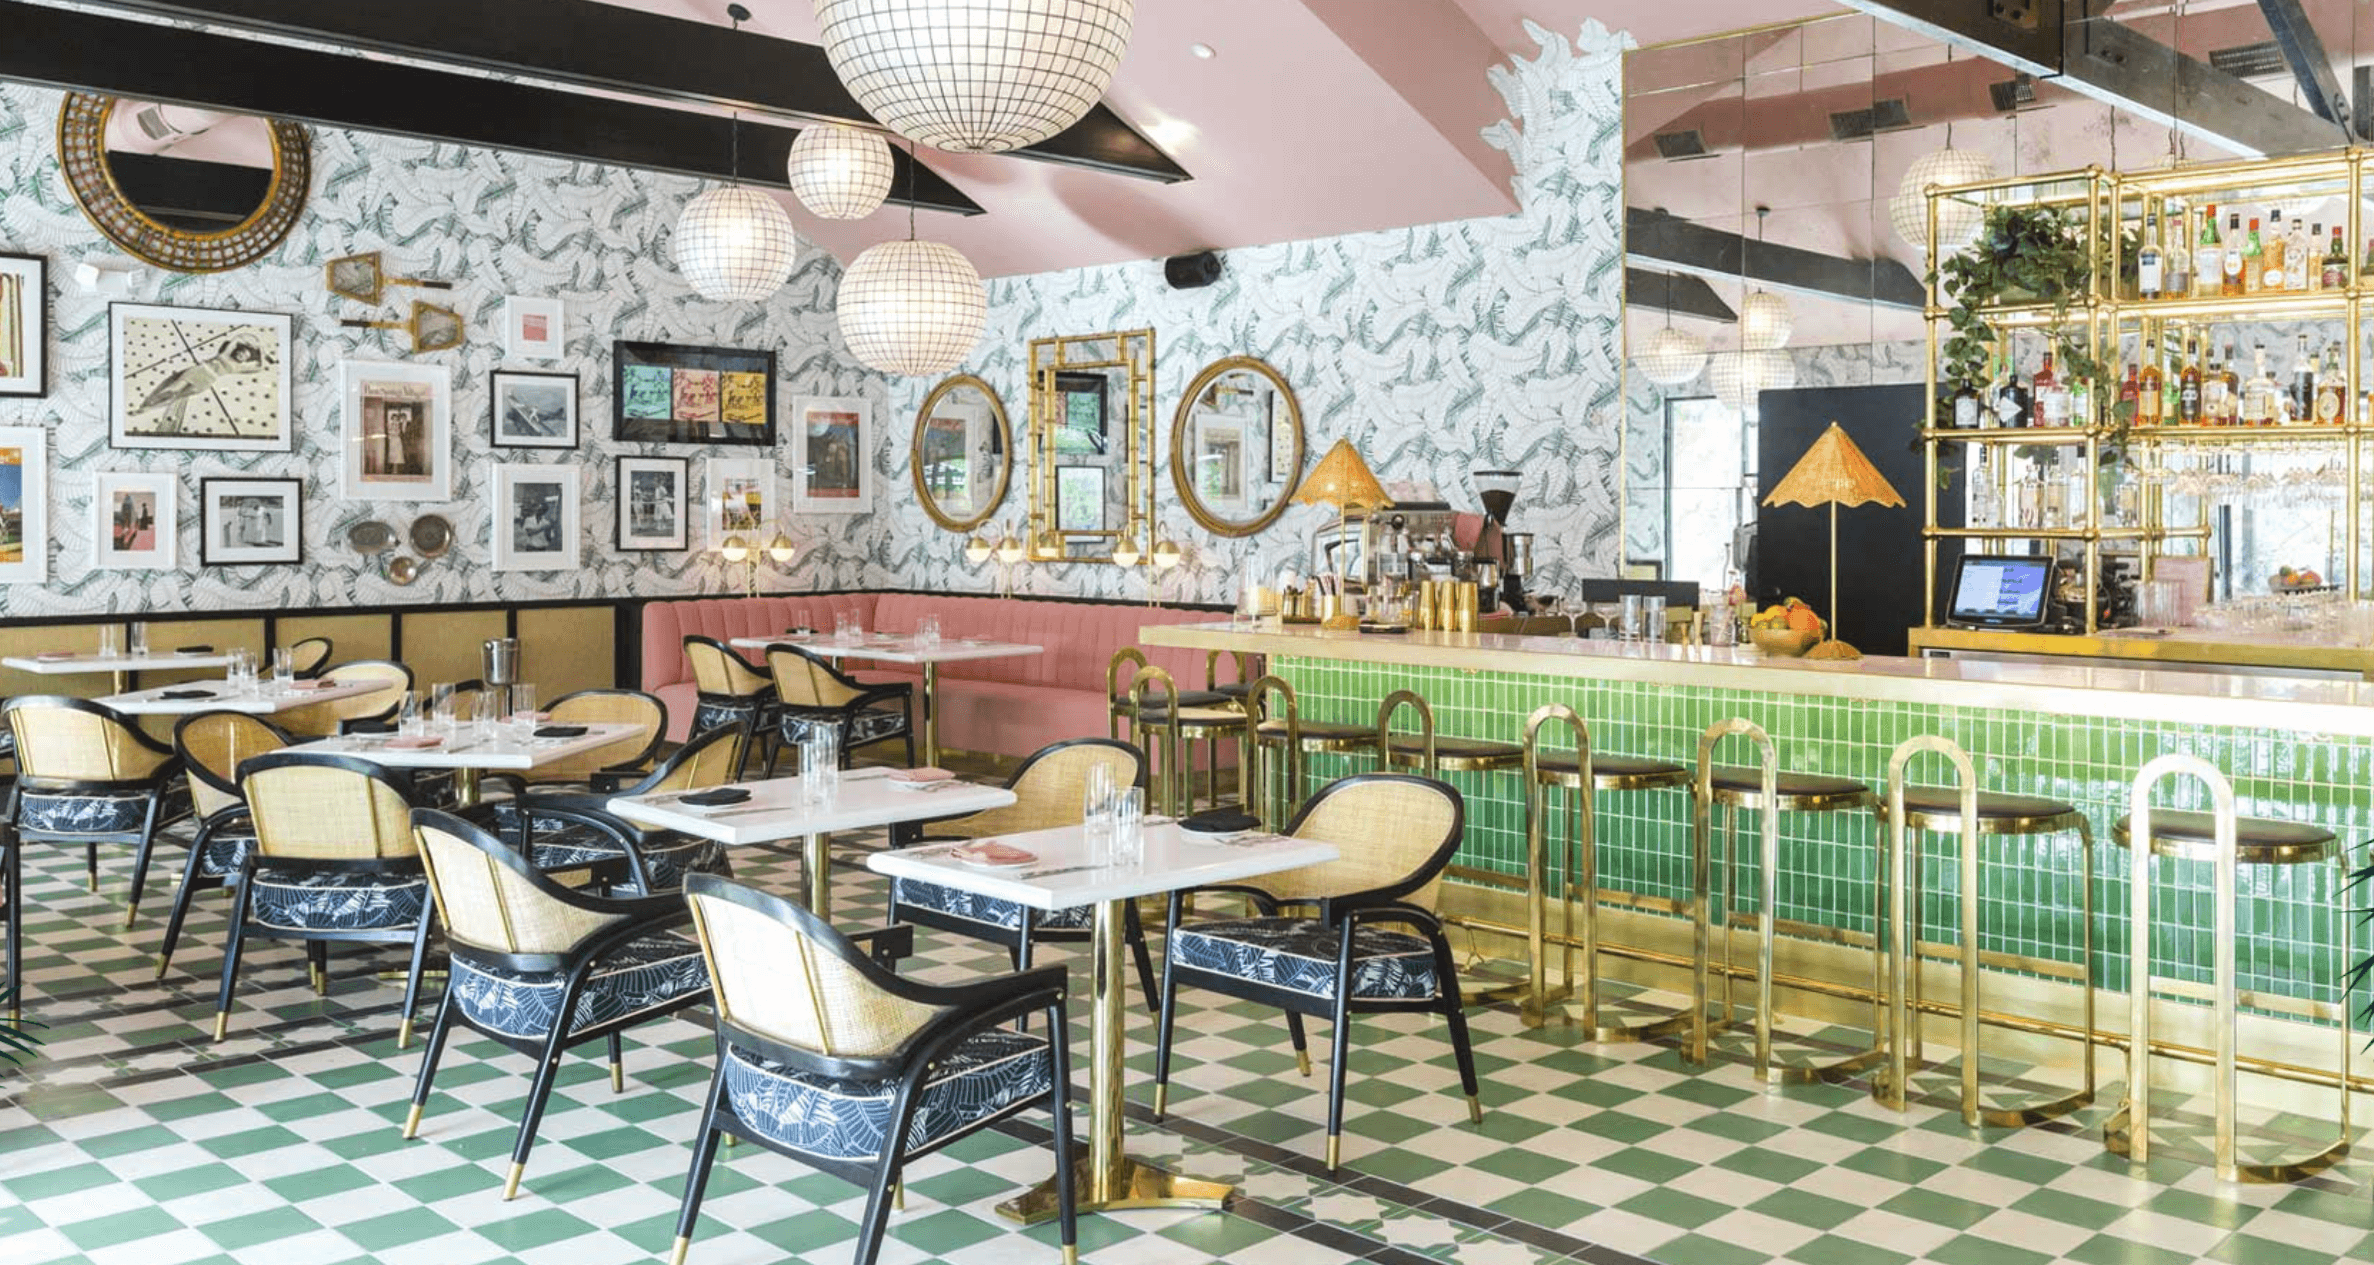 Green and White Checkerboard Flooring